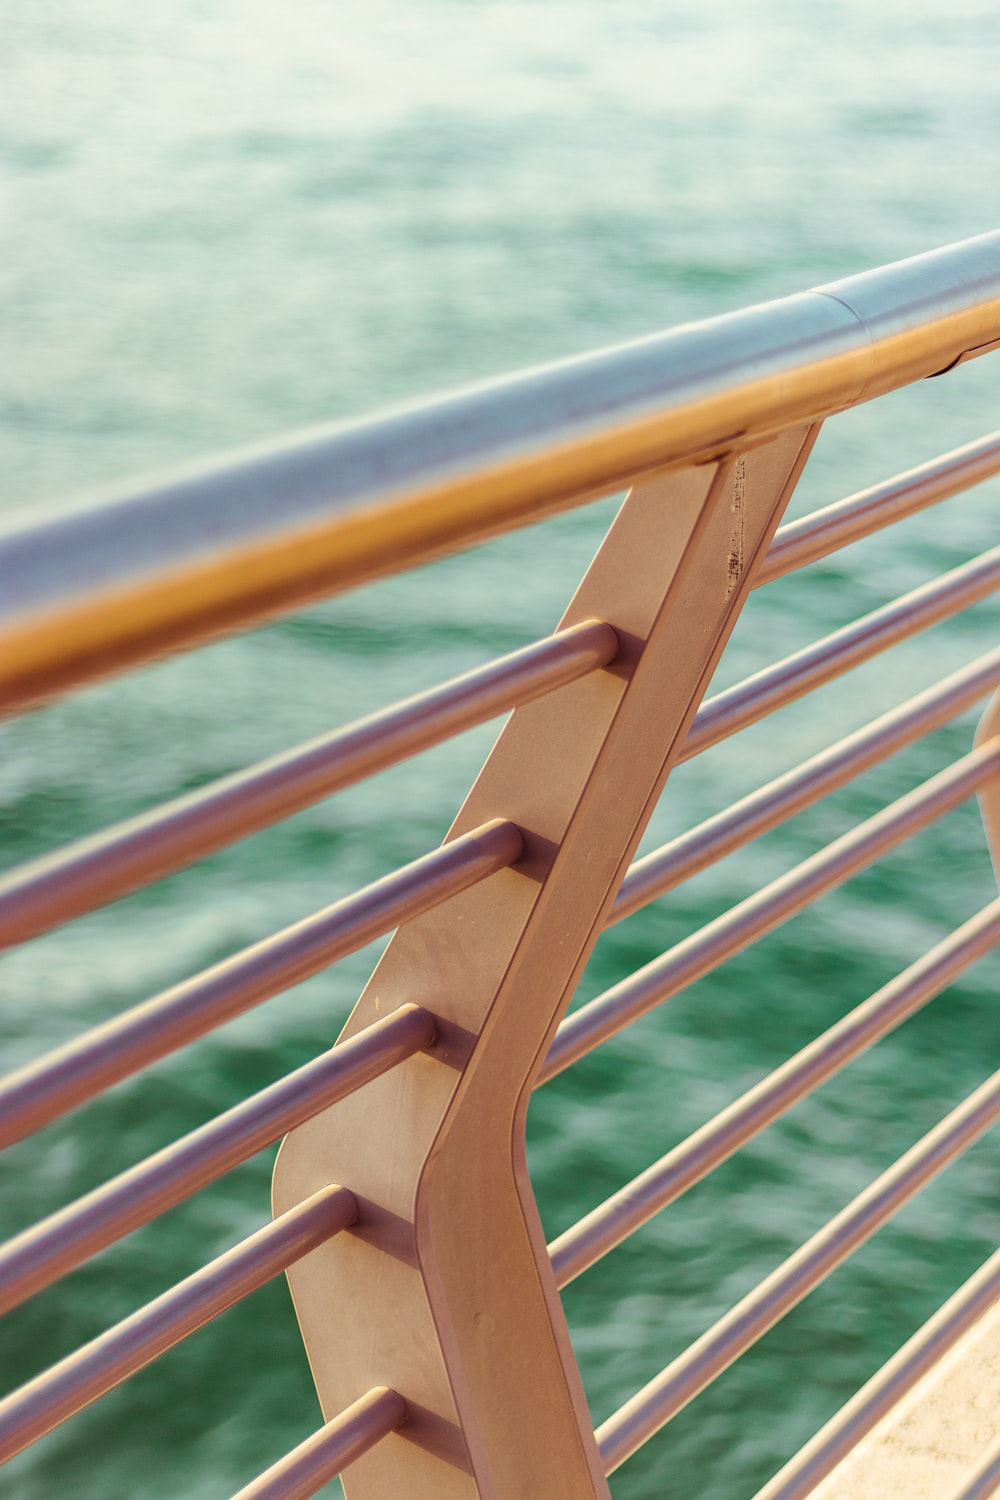 brown wooden railings near body of water during daytime